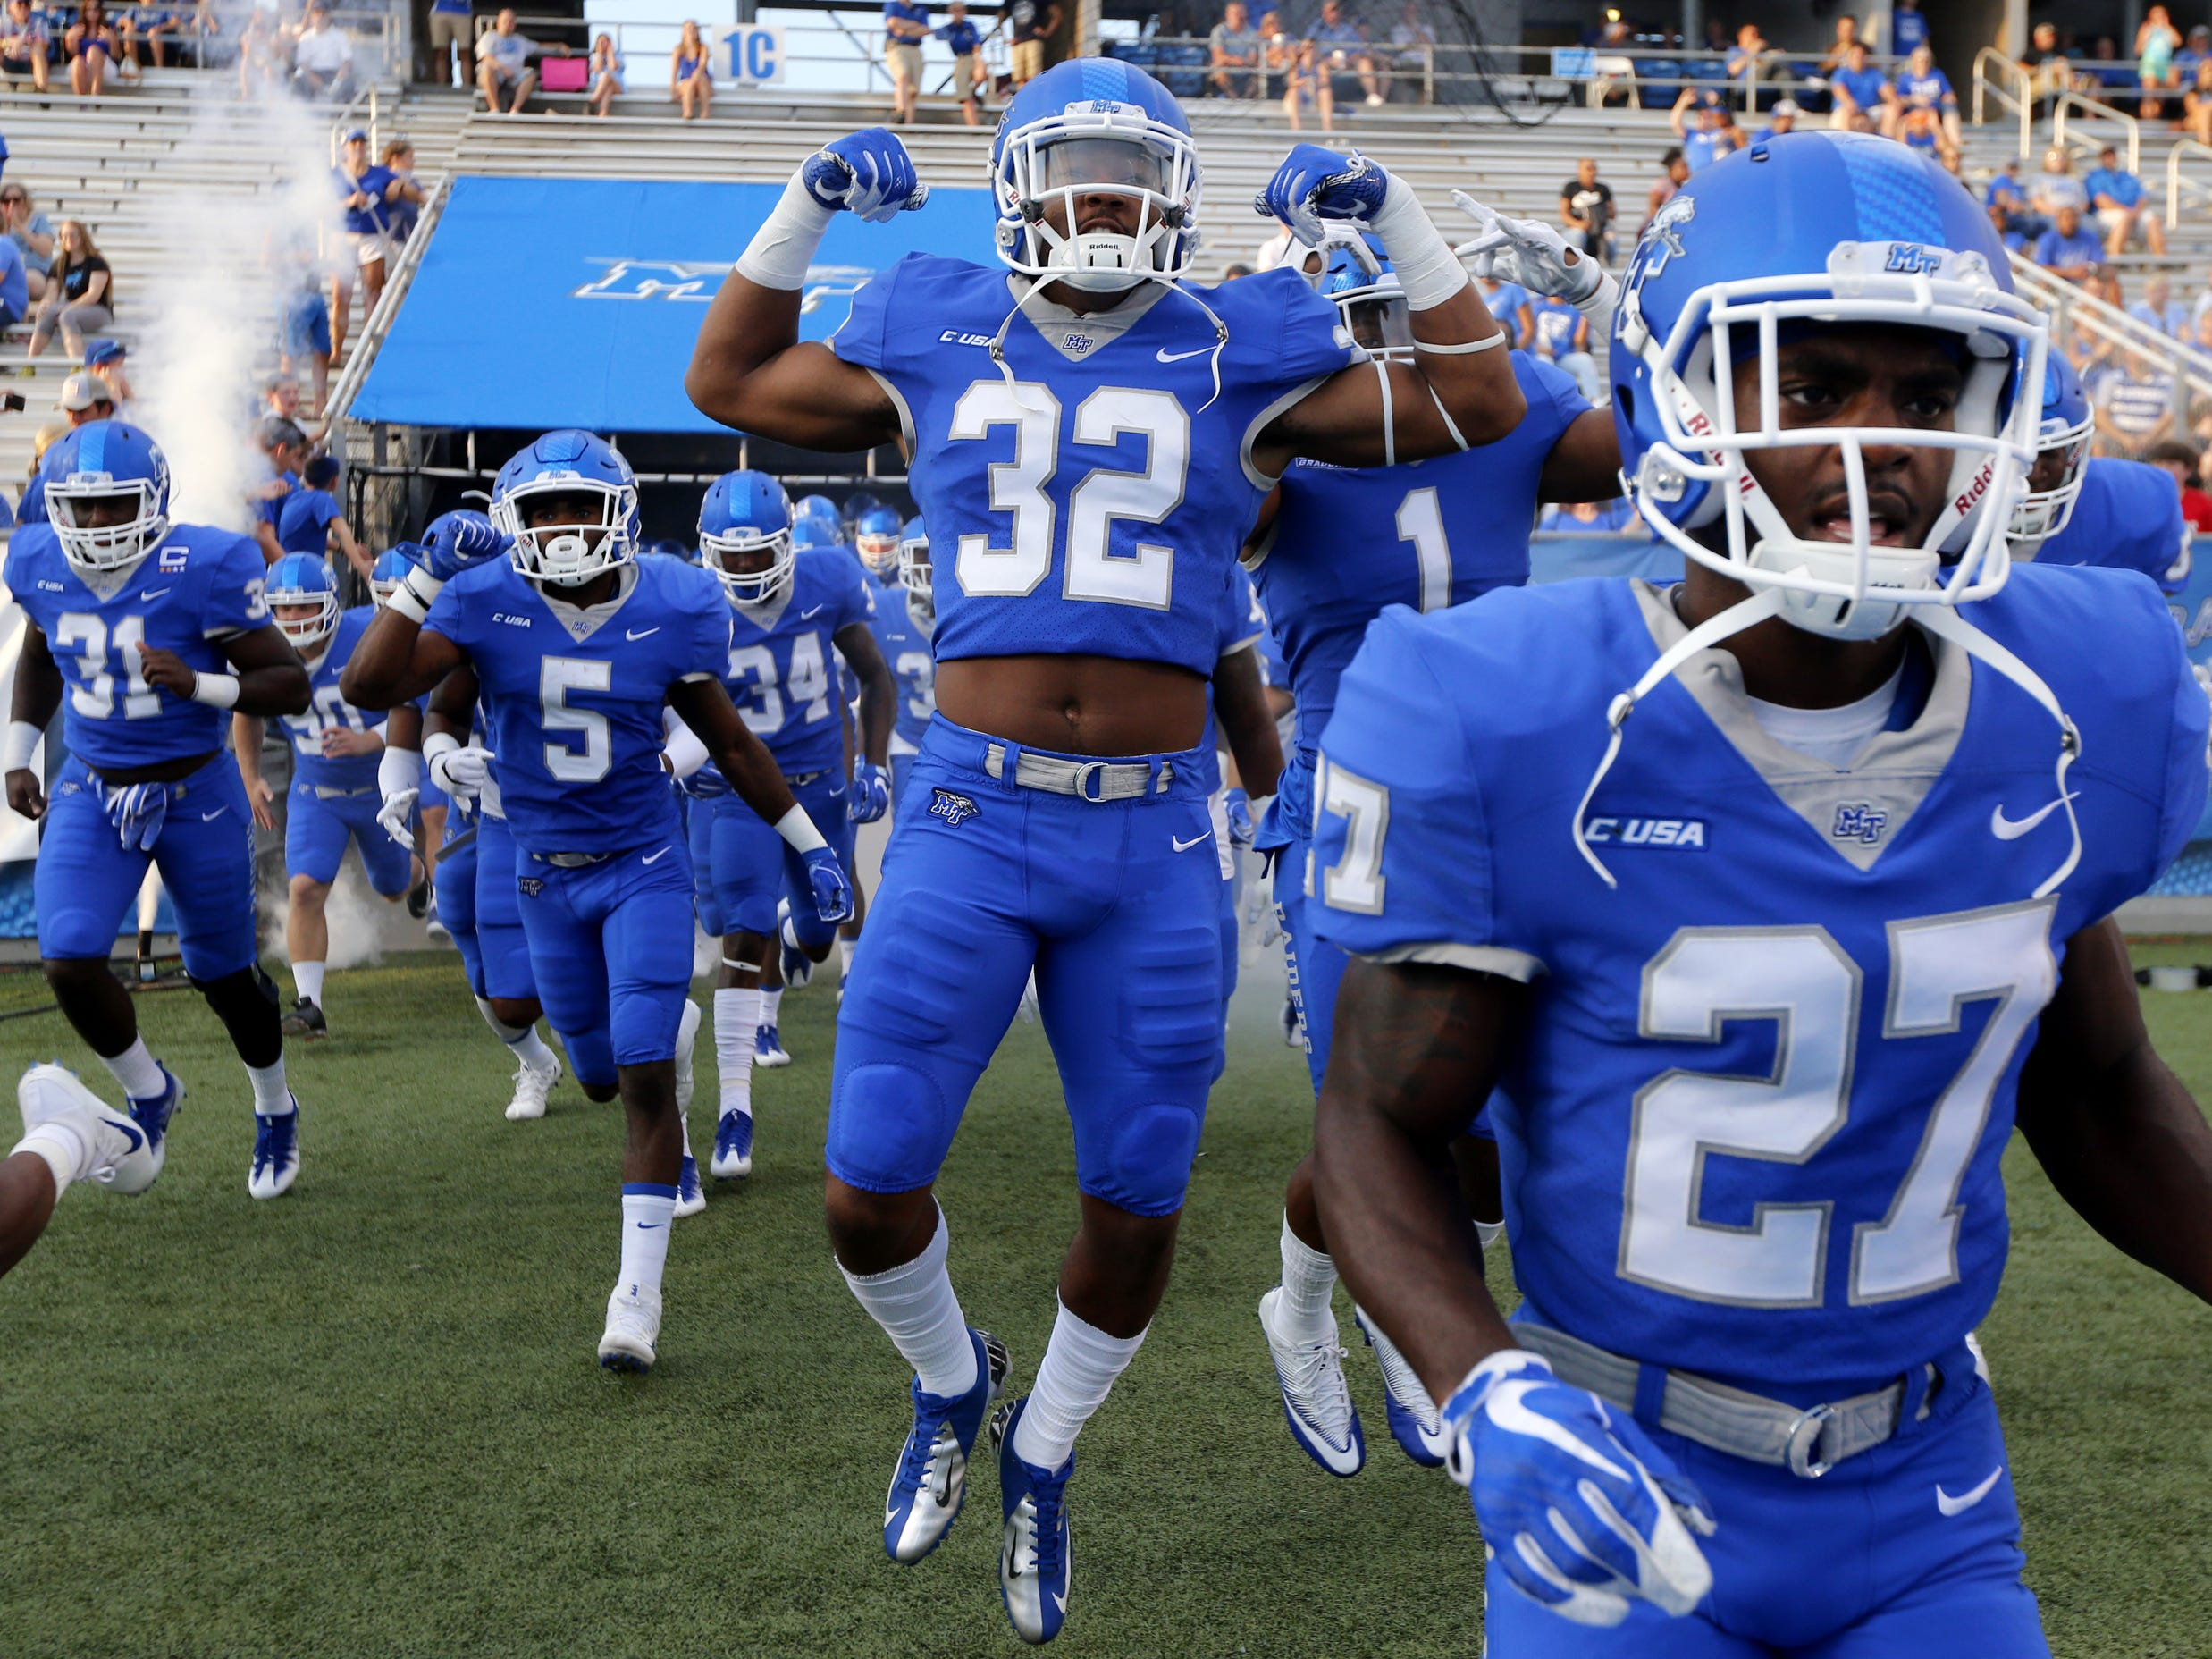 MTSU players including Chris Melton (32) come out of the tunnel as they take the field before the start of the football game against Bowling Green on Saturday, Sept. 23, 2017.